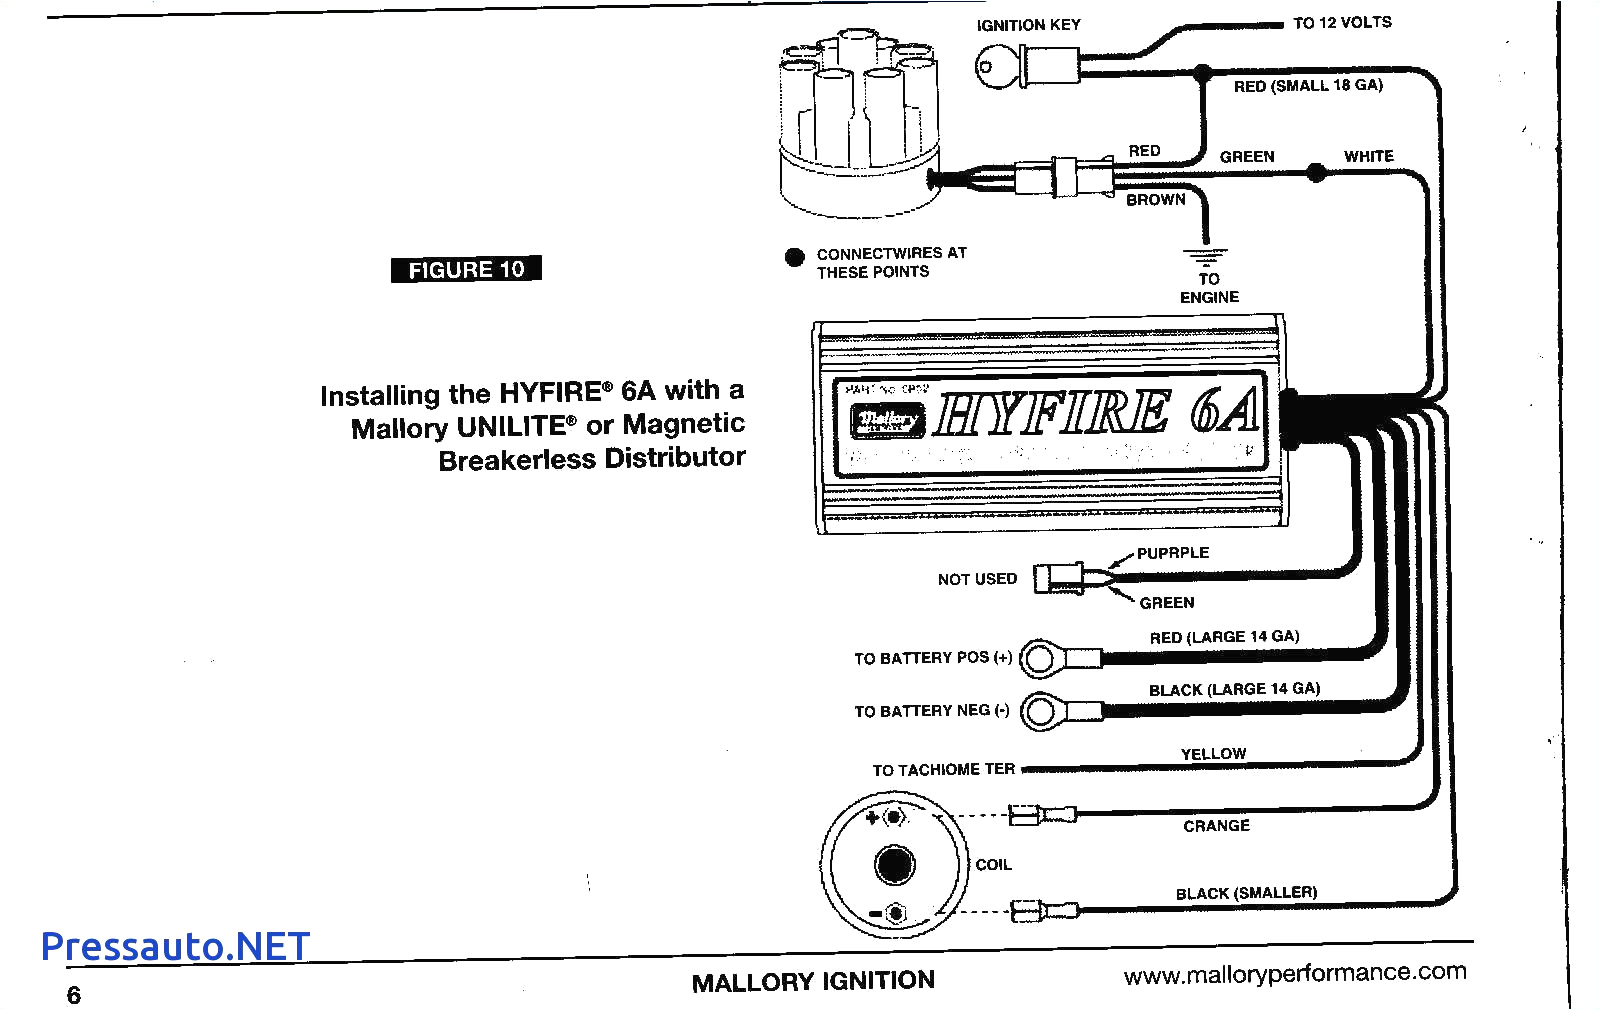 Mallory Promaster Coil Wiring Diagram Mallory Promaster Coil Wiring Diagram Beautiful Coil for Mallory